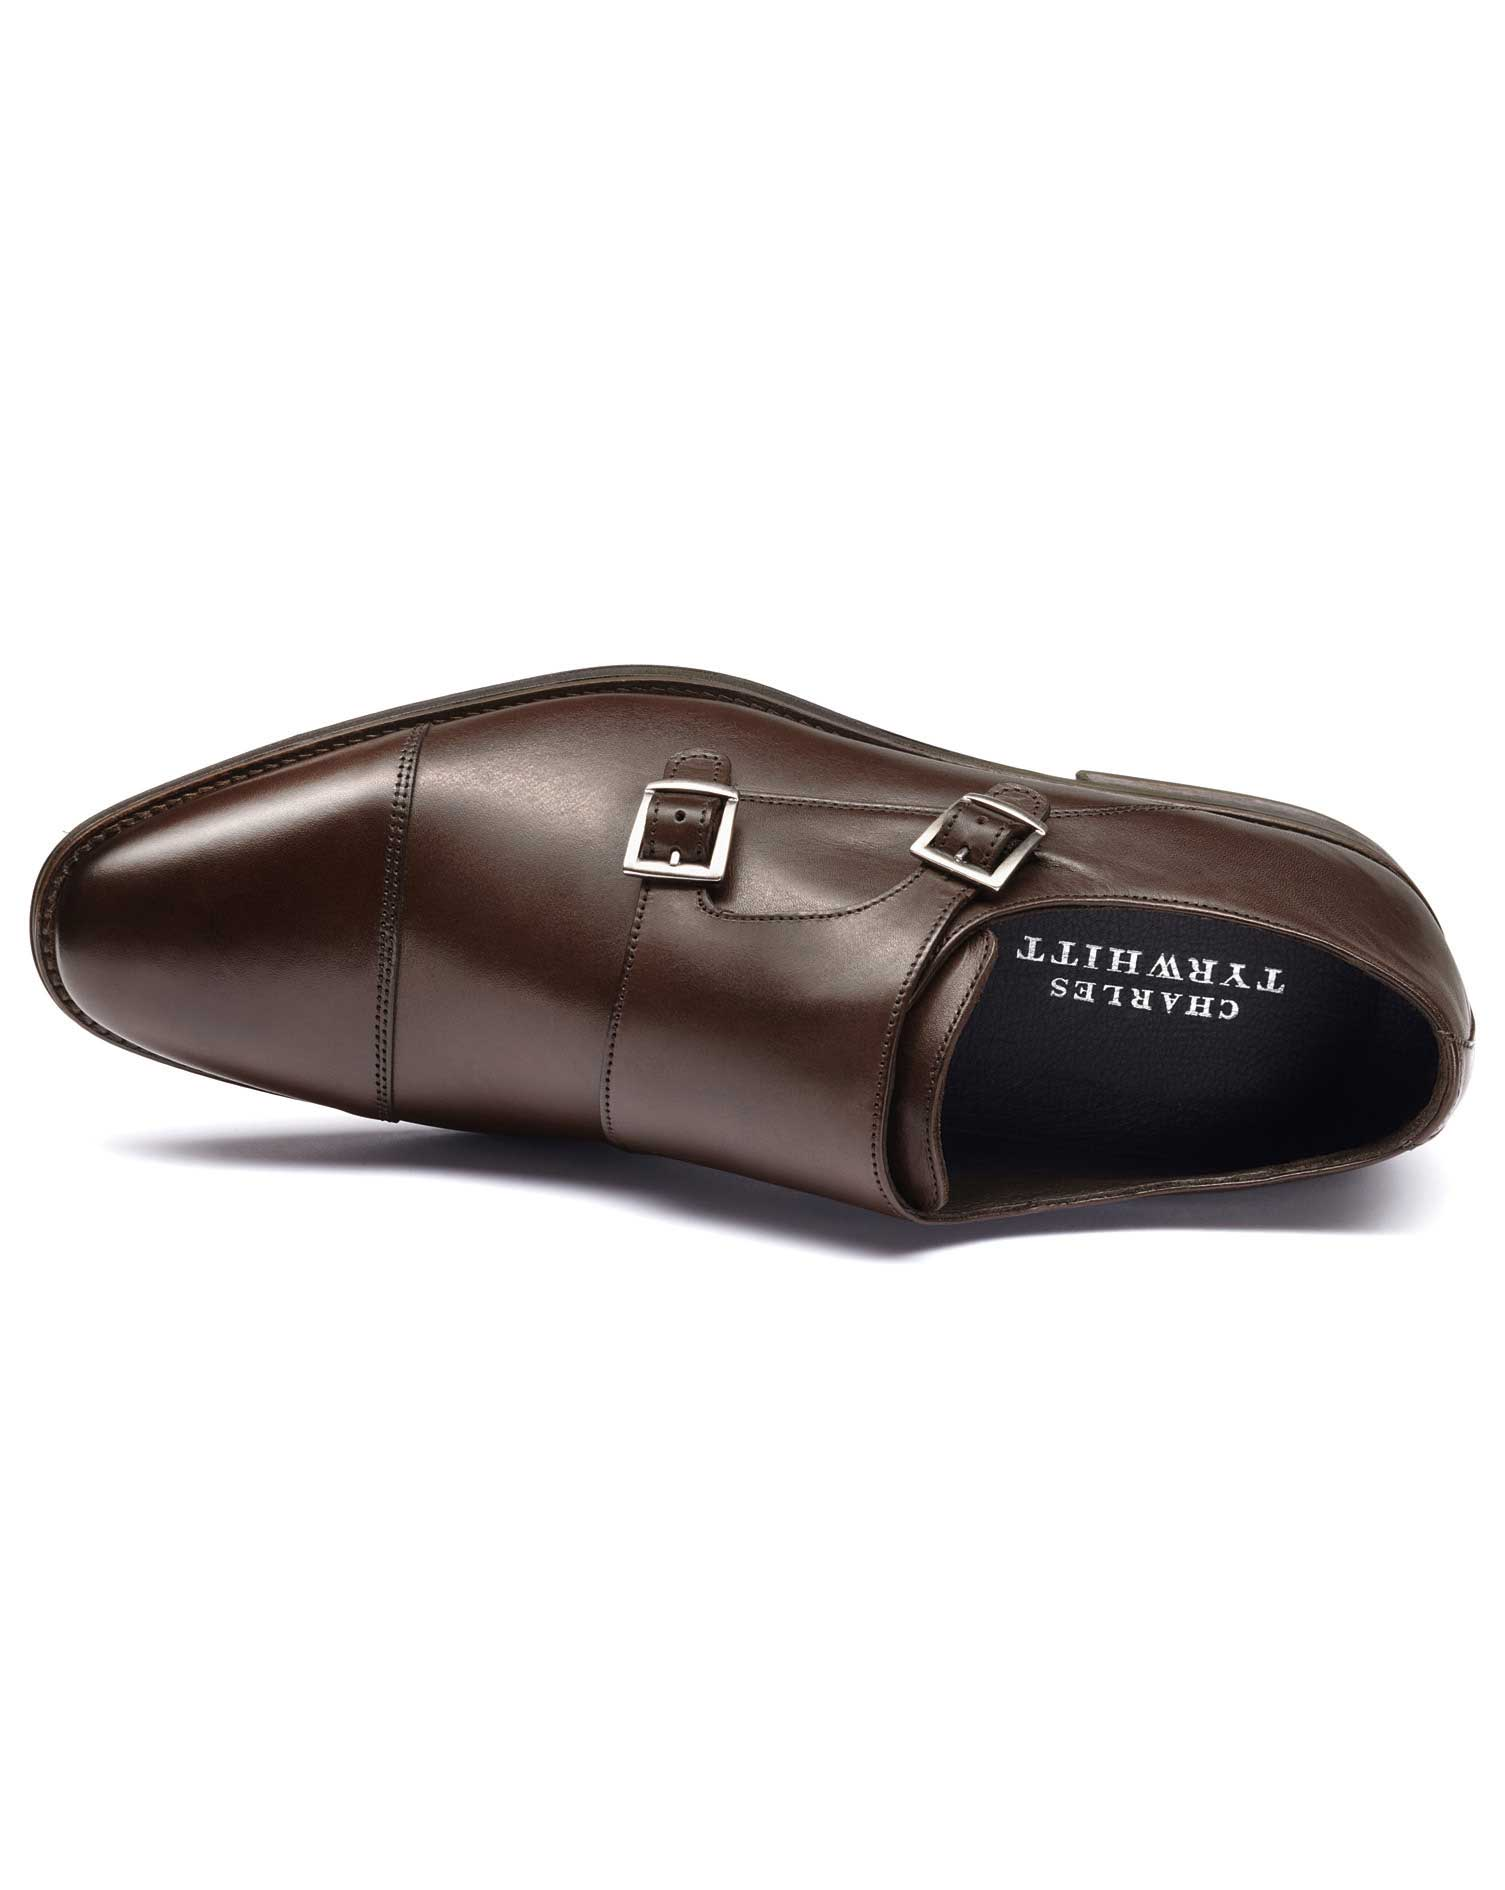 Brown Performance Monk Shoe Size 13 R by Charles Tyrwhitt